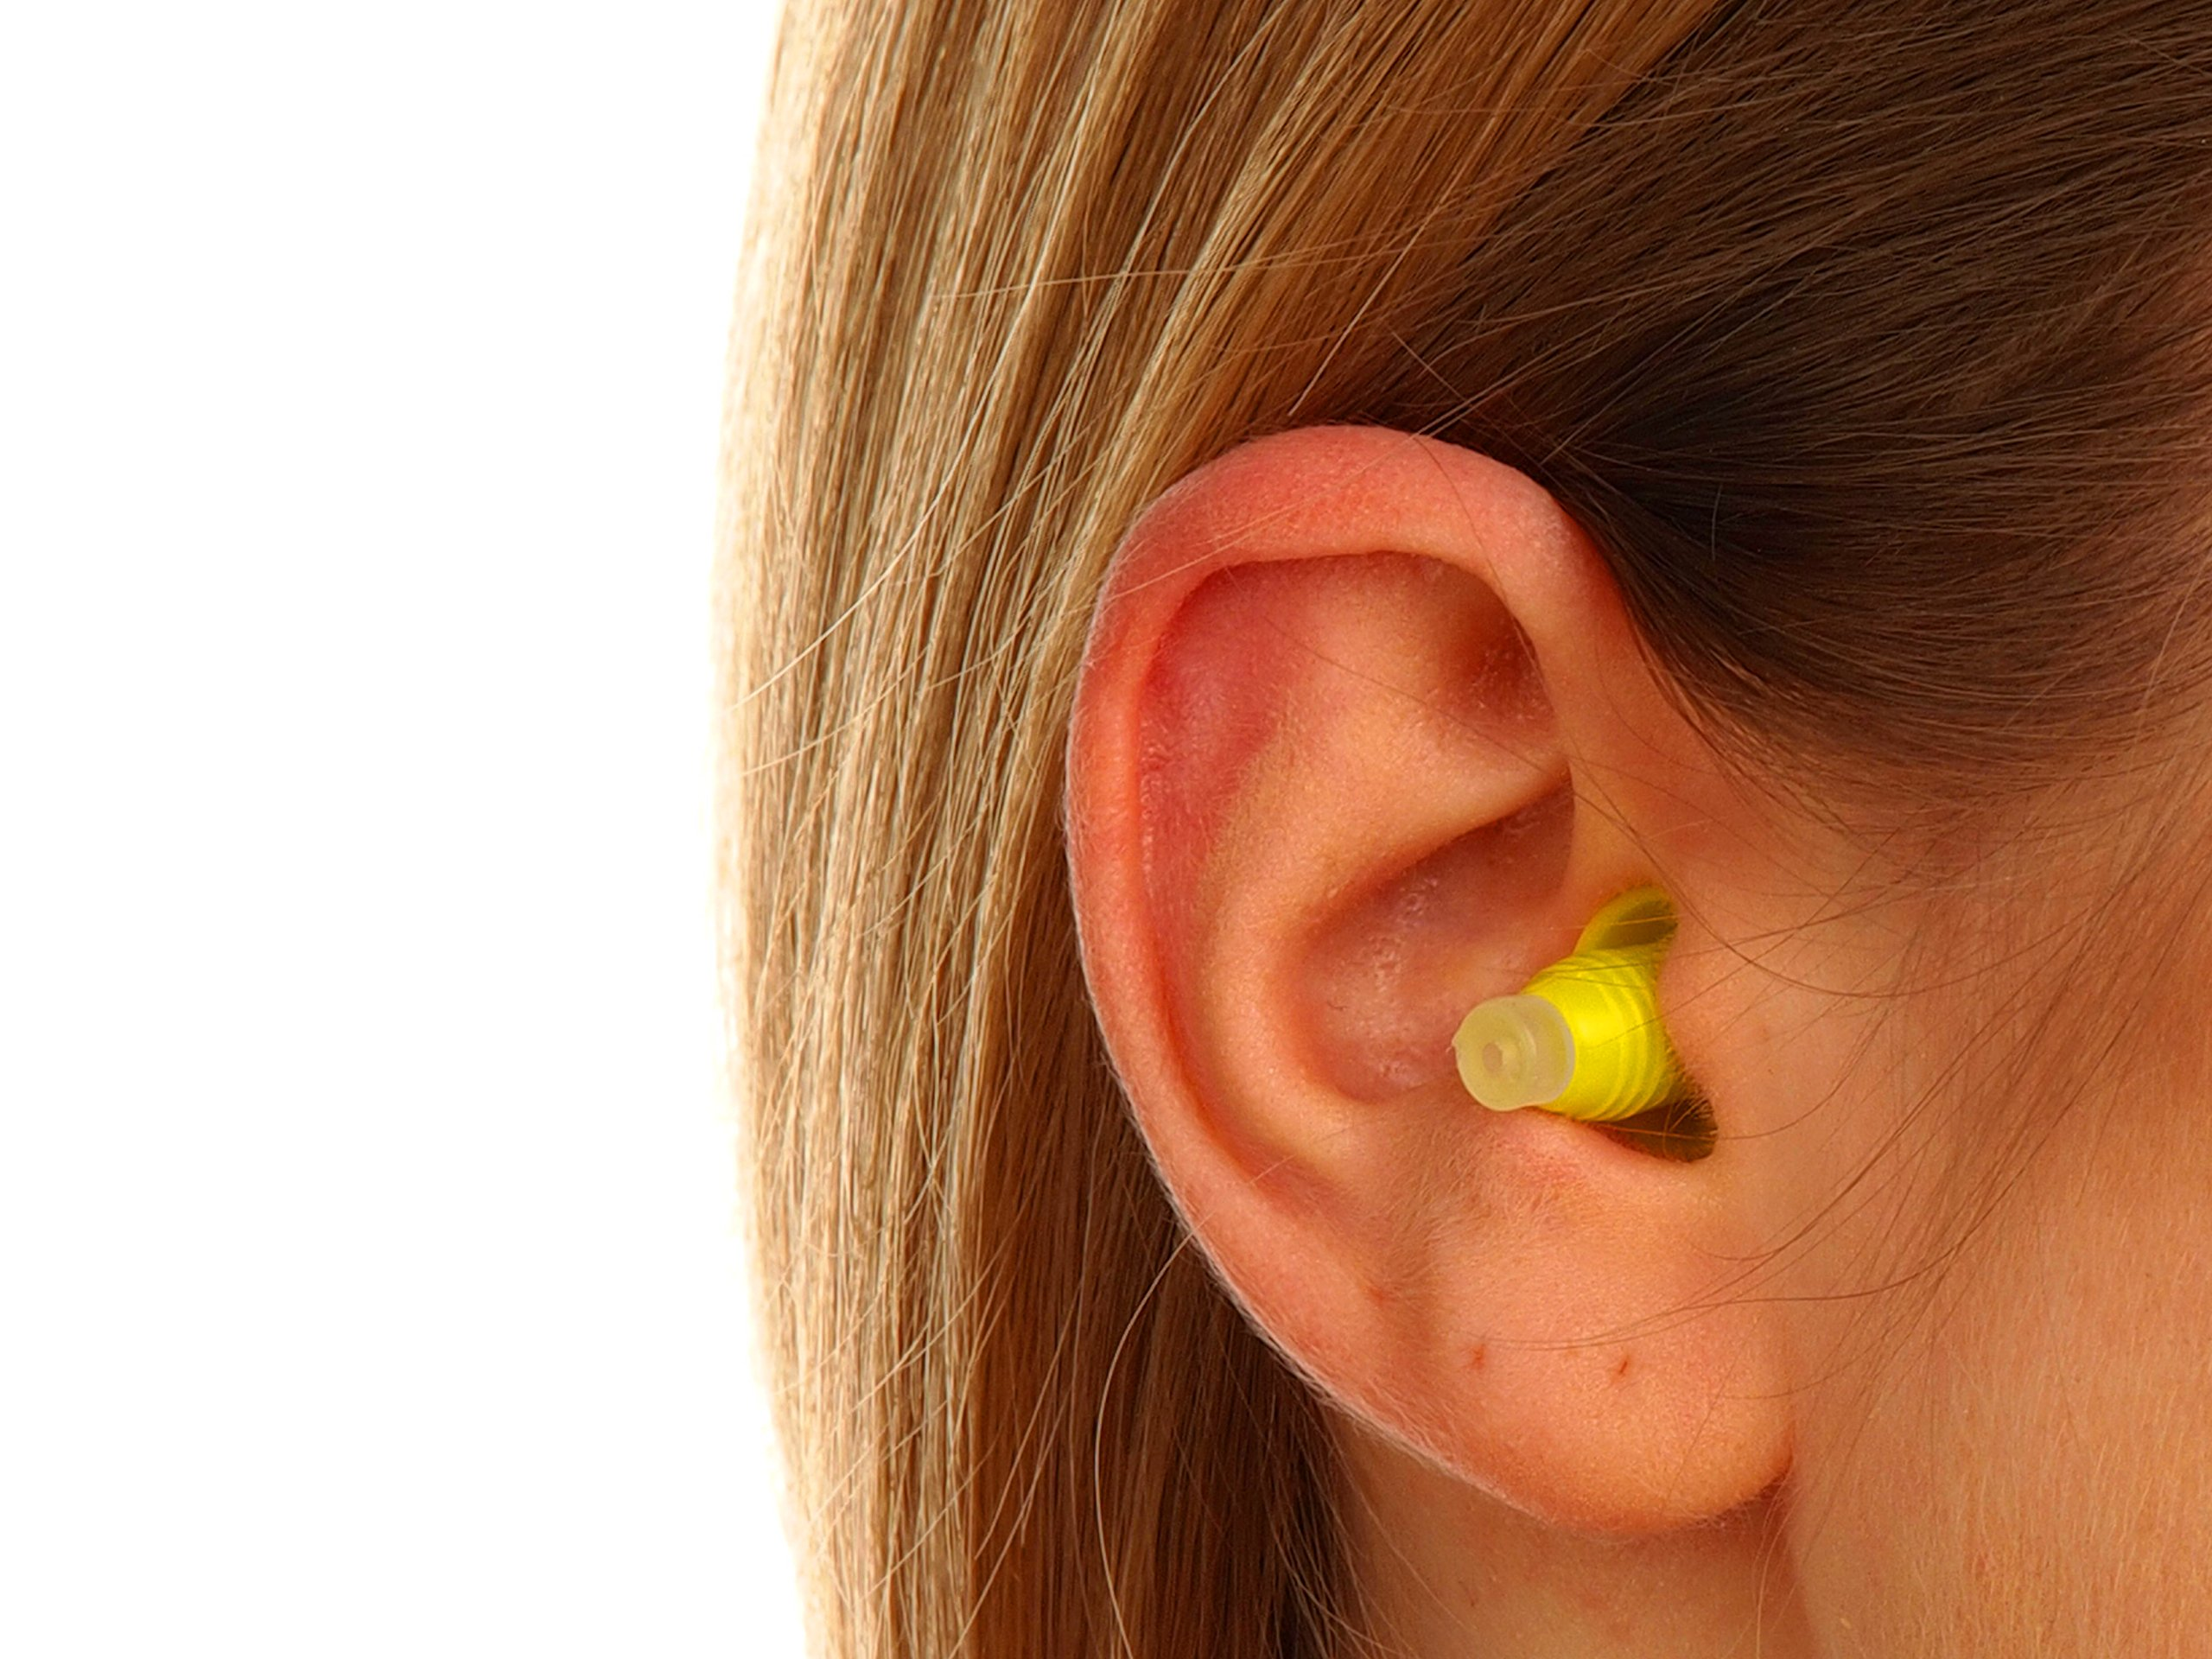 PQ Earplugs for Sleep - Comfortable & Reusable Ear Plugs for Side Sleepers - Sound Blocking Level 32 dB - Noise Cancelling for Snoring & Reusable Ear Plugs for Swimming & Traveling by Peace&Quiet (Image #9)